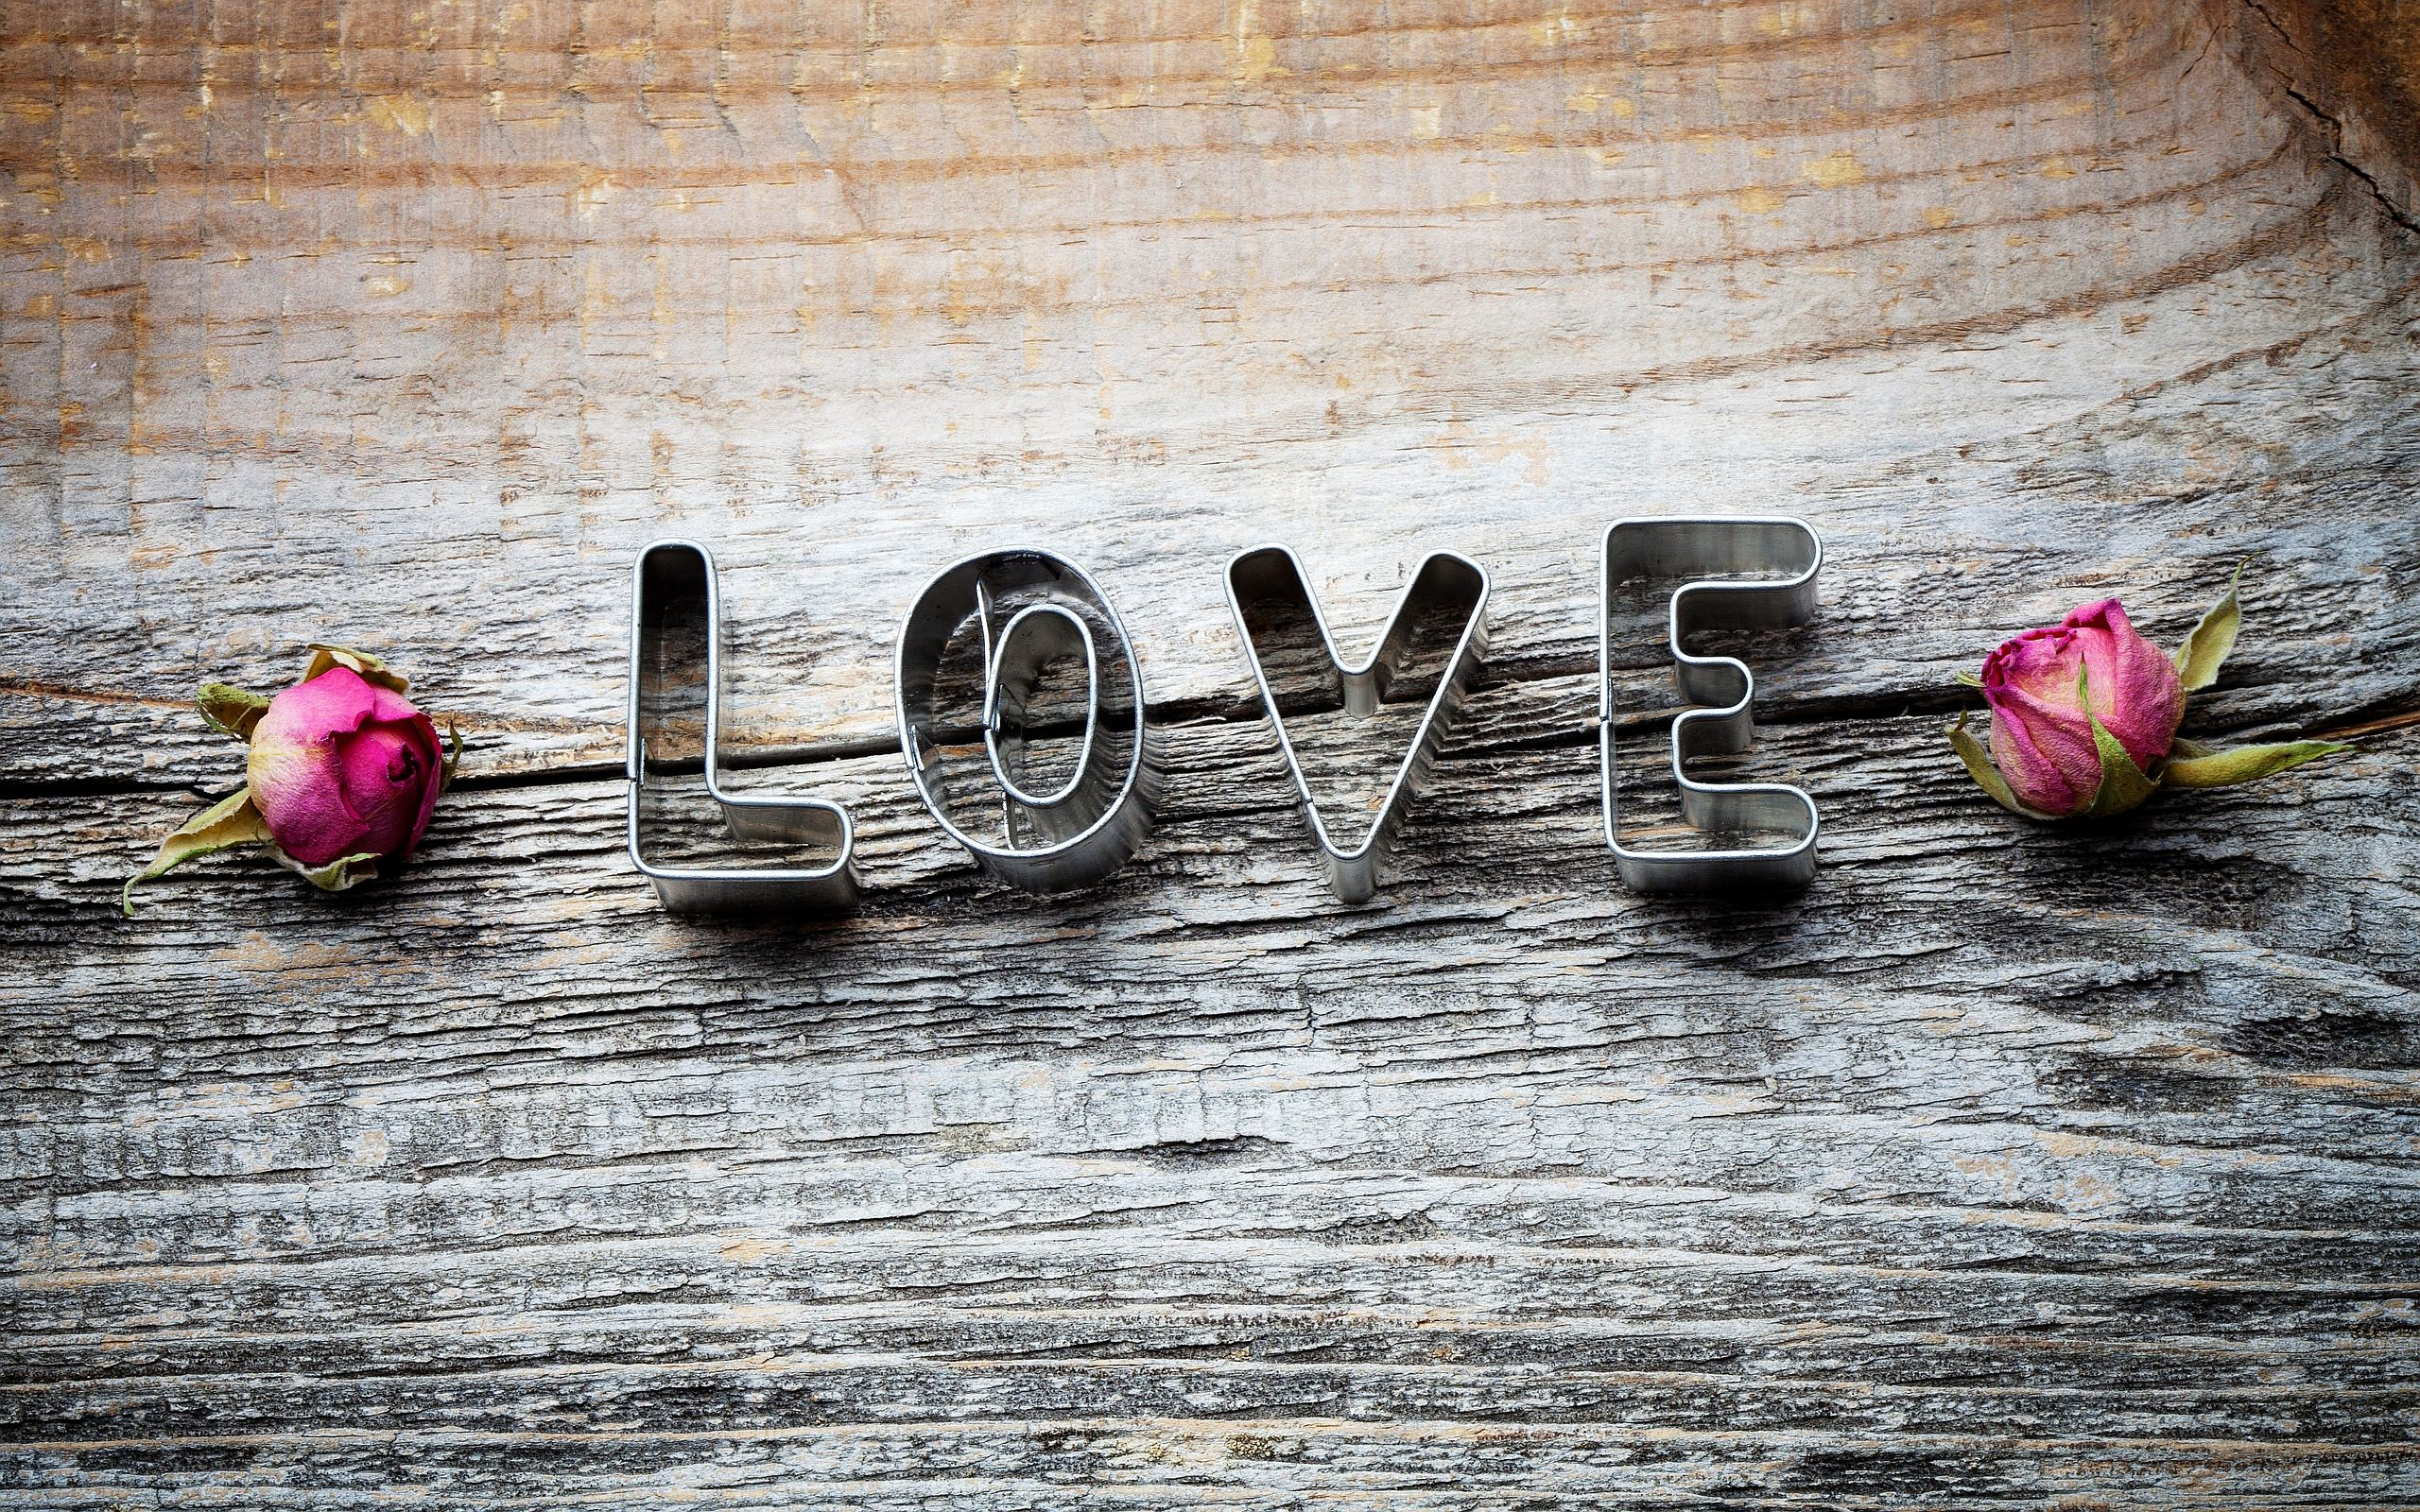 Love Wallpaper For Tablet Hd : Love Background Pictures - WallpaperSafari